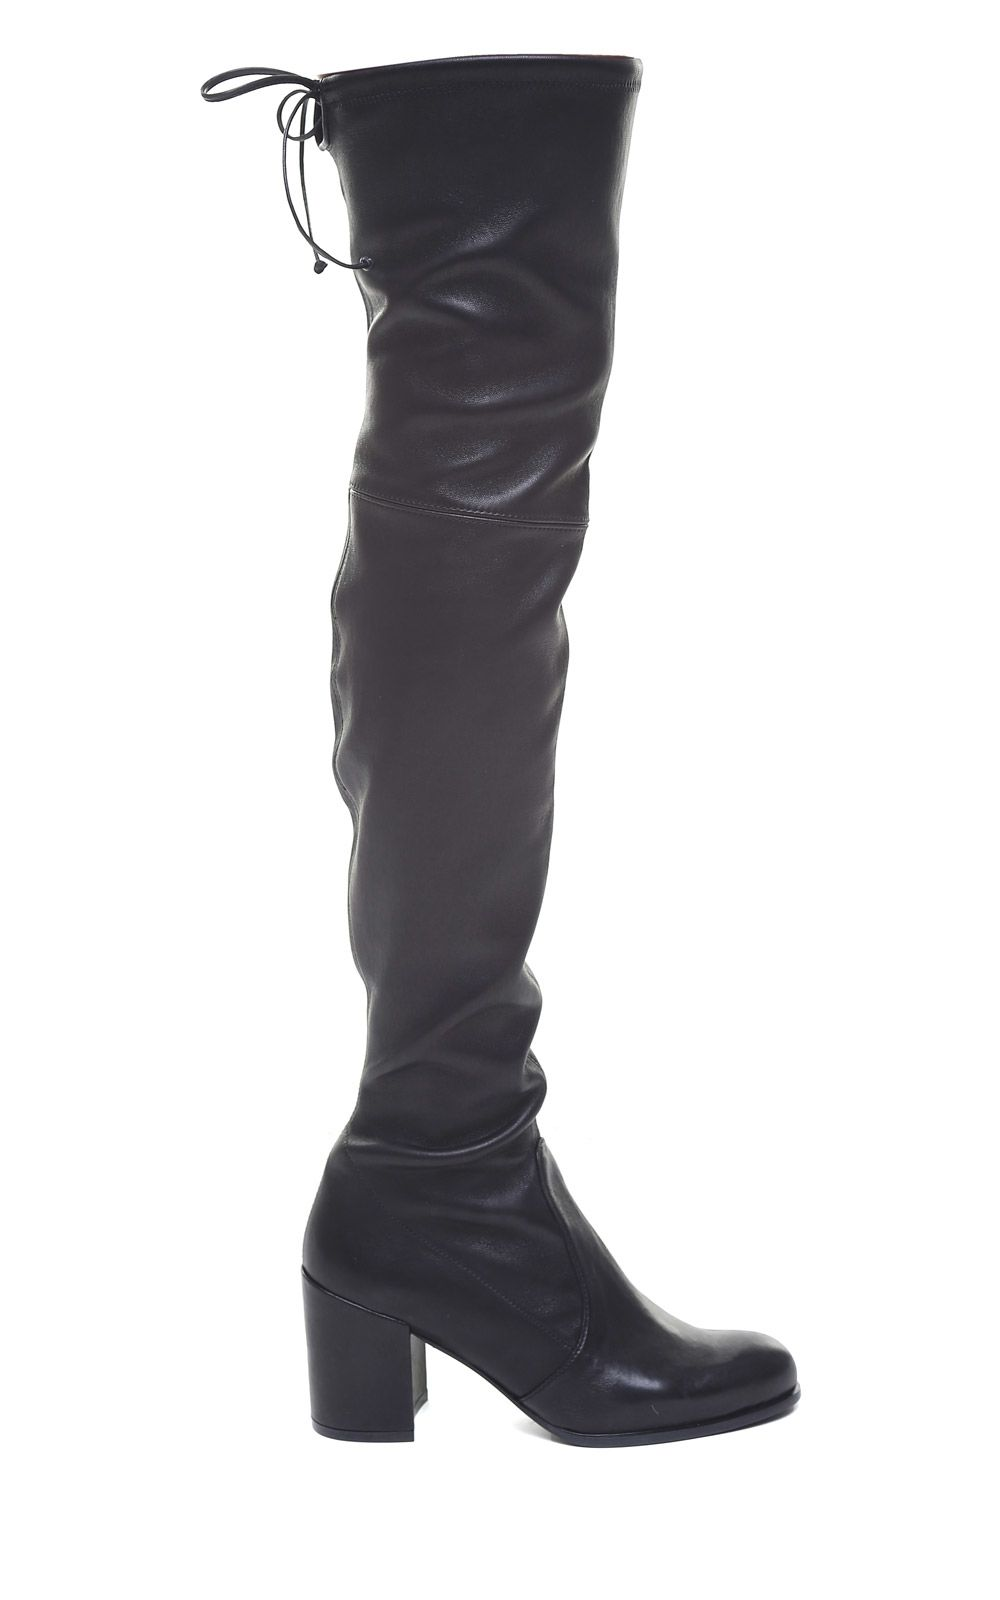 Tieland Stretch-Leather Over-The-Knee Boots in Nero